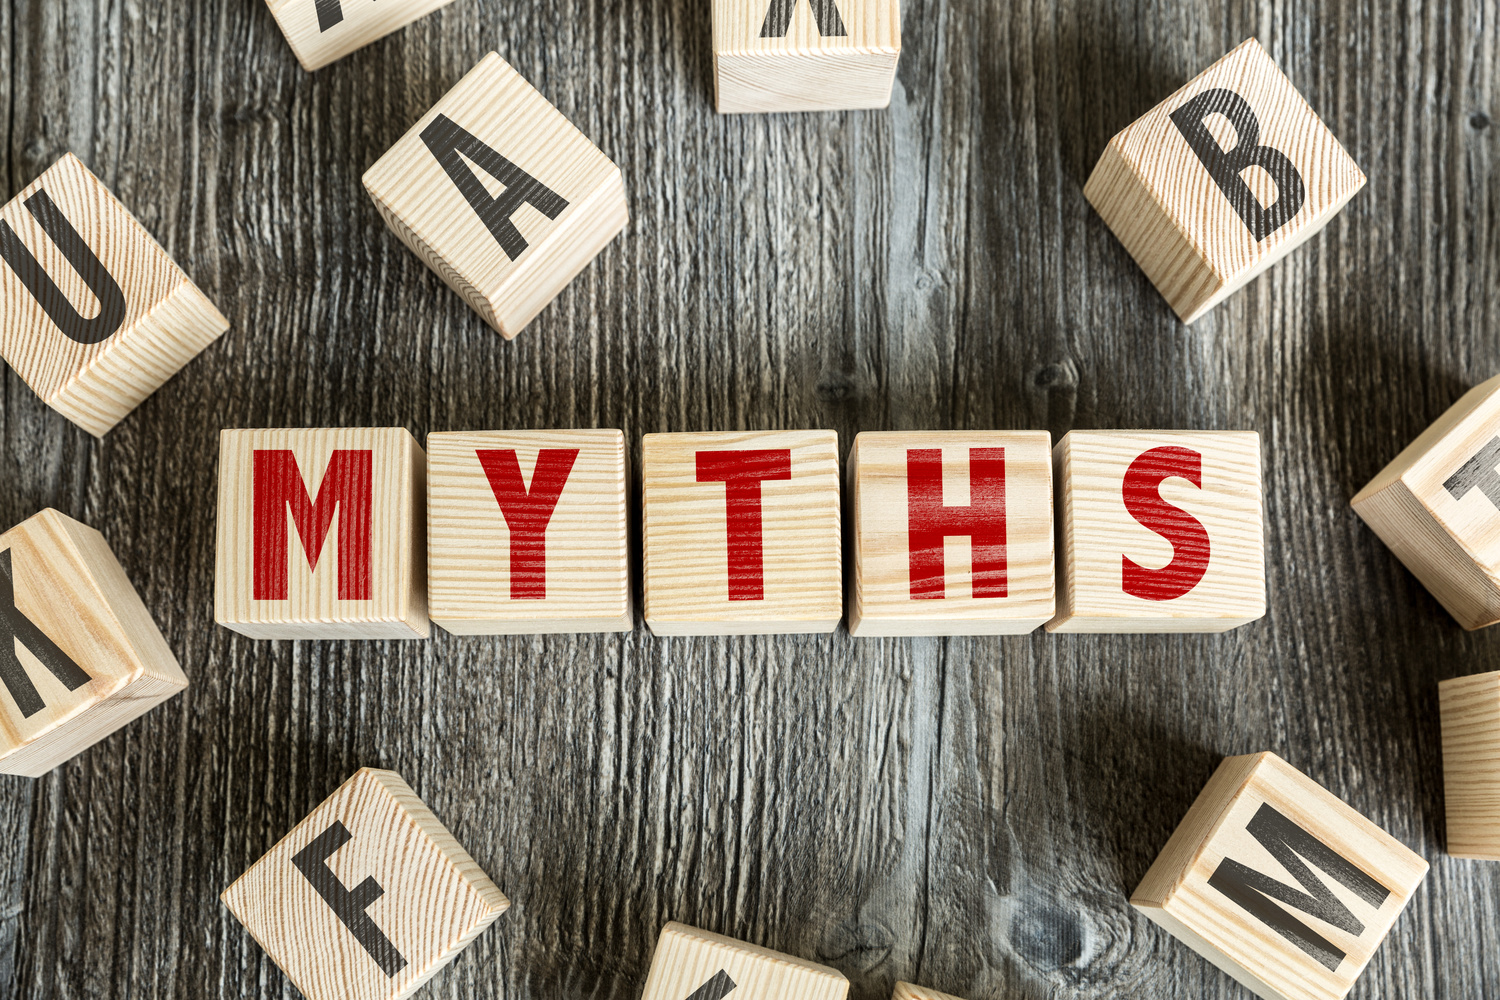 5 common virginia divorce myths and misconceptions debunked frugal 5 common virginia divorce myths and misconceptions debunked solutioingenieria Choice Image